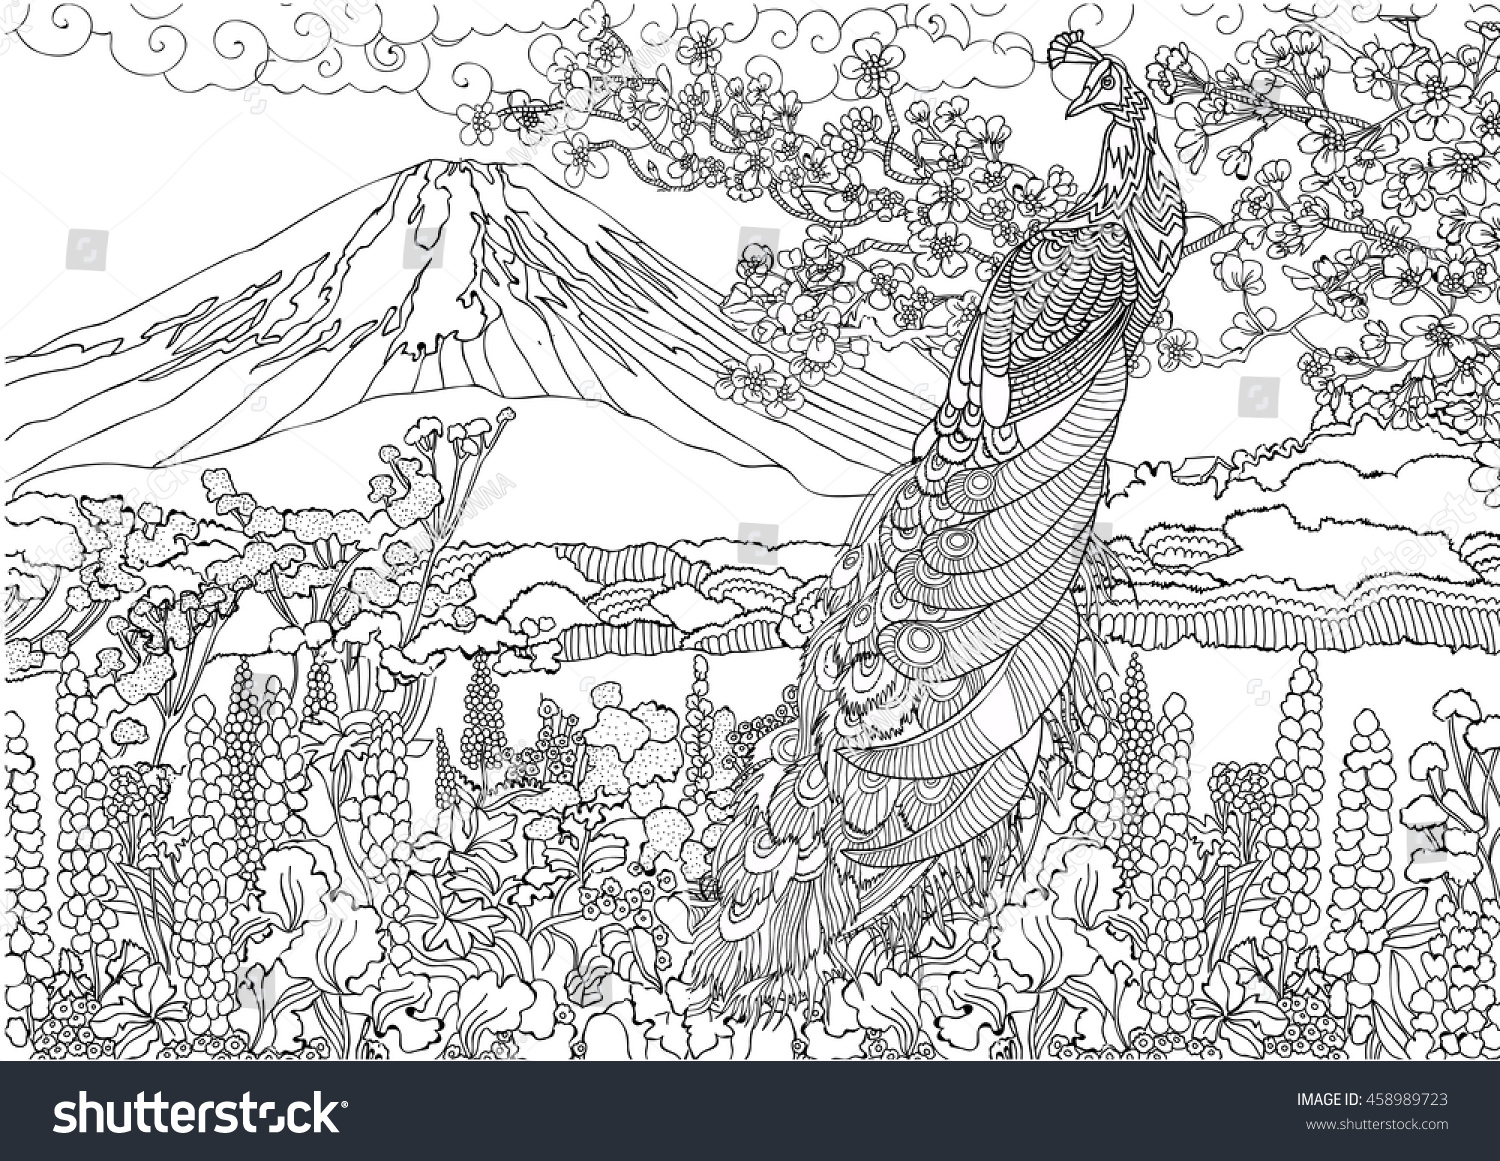 Mountain Japan Fujiyama Landscape Coloring Pages Stock Vector ...